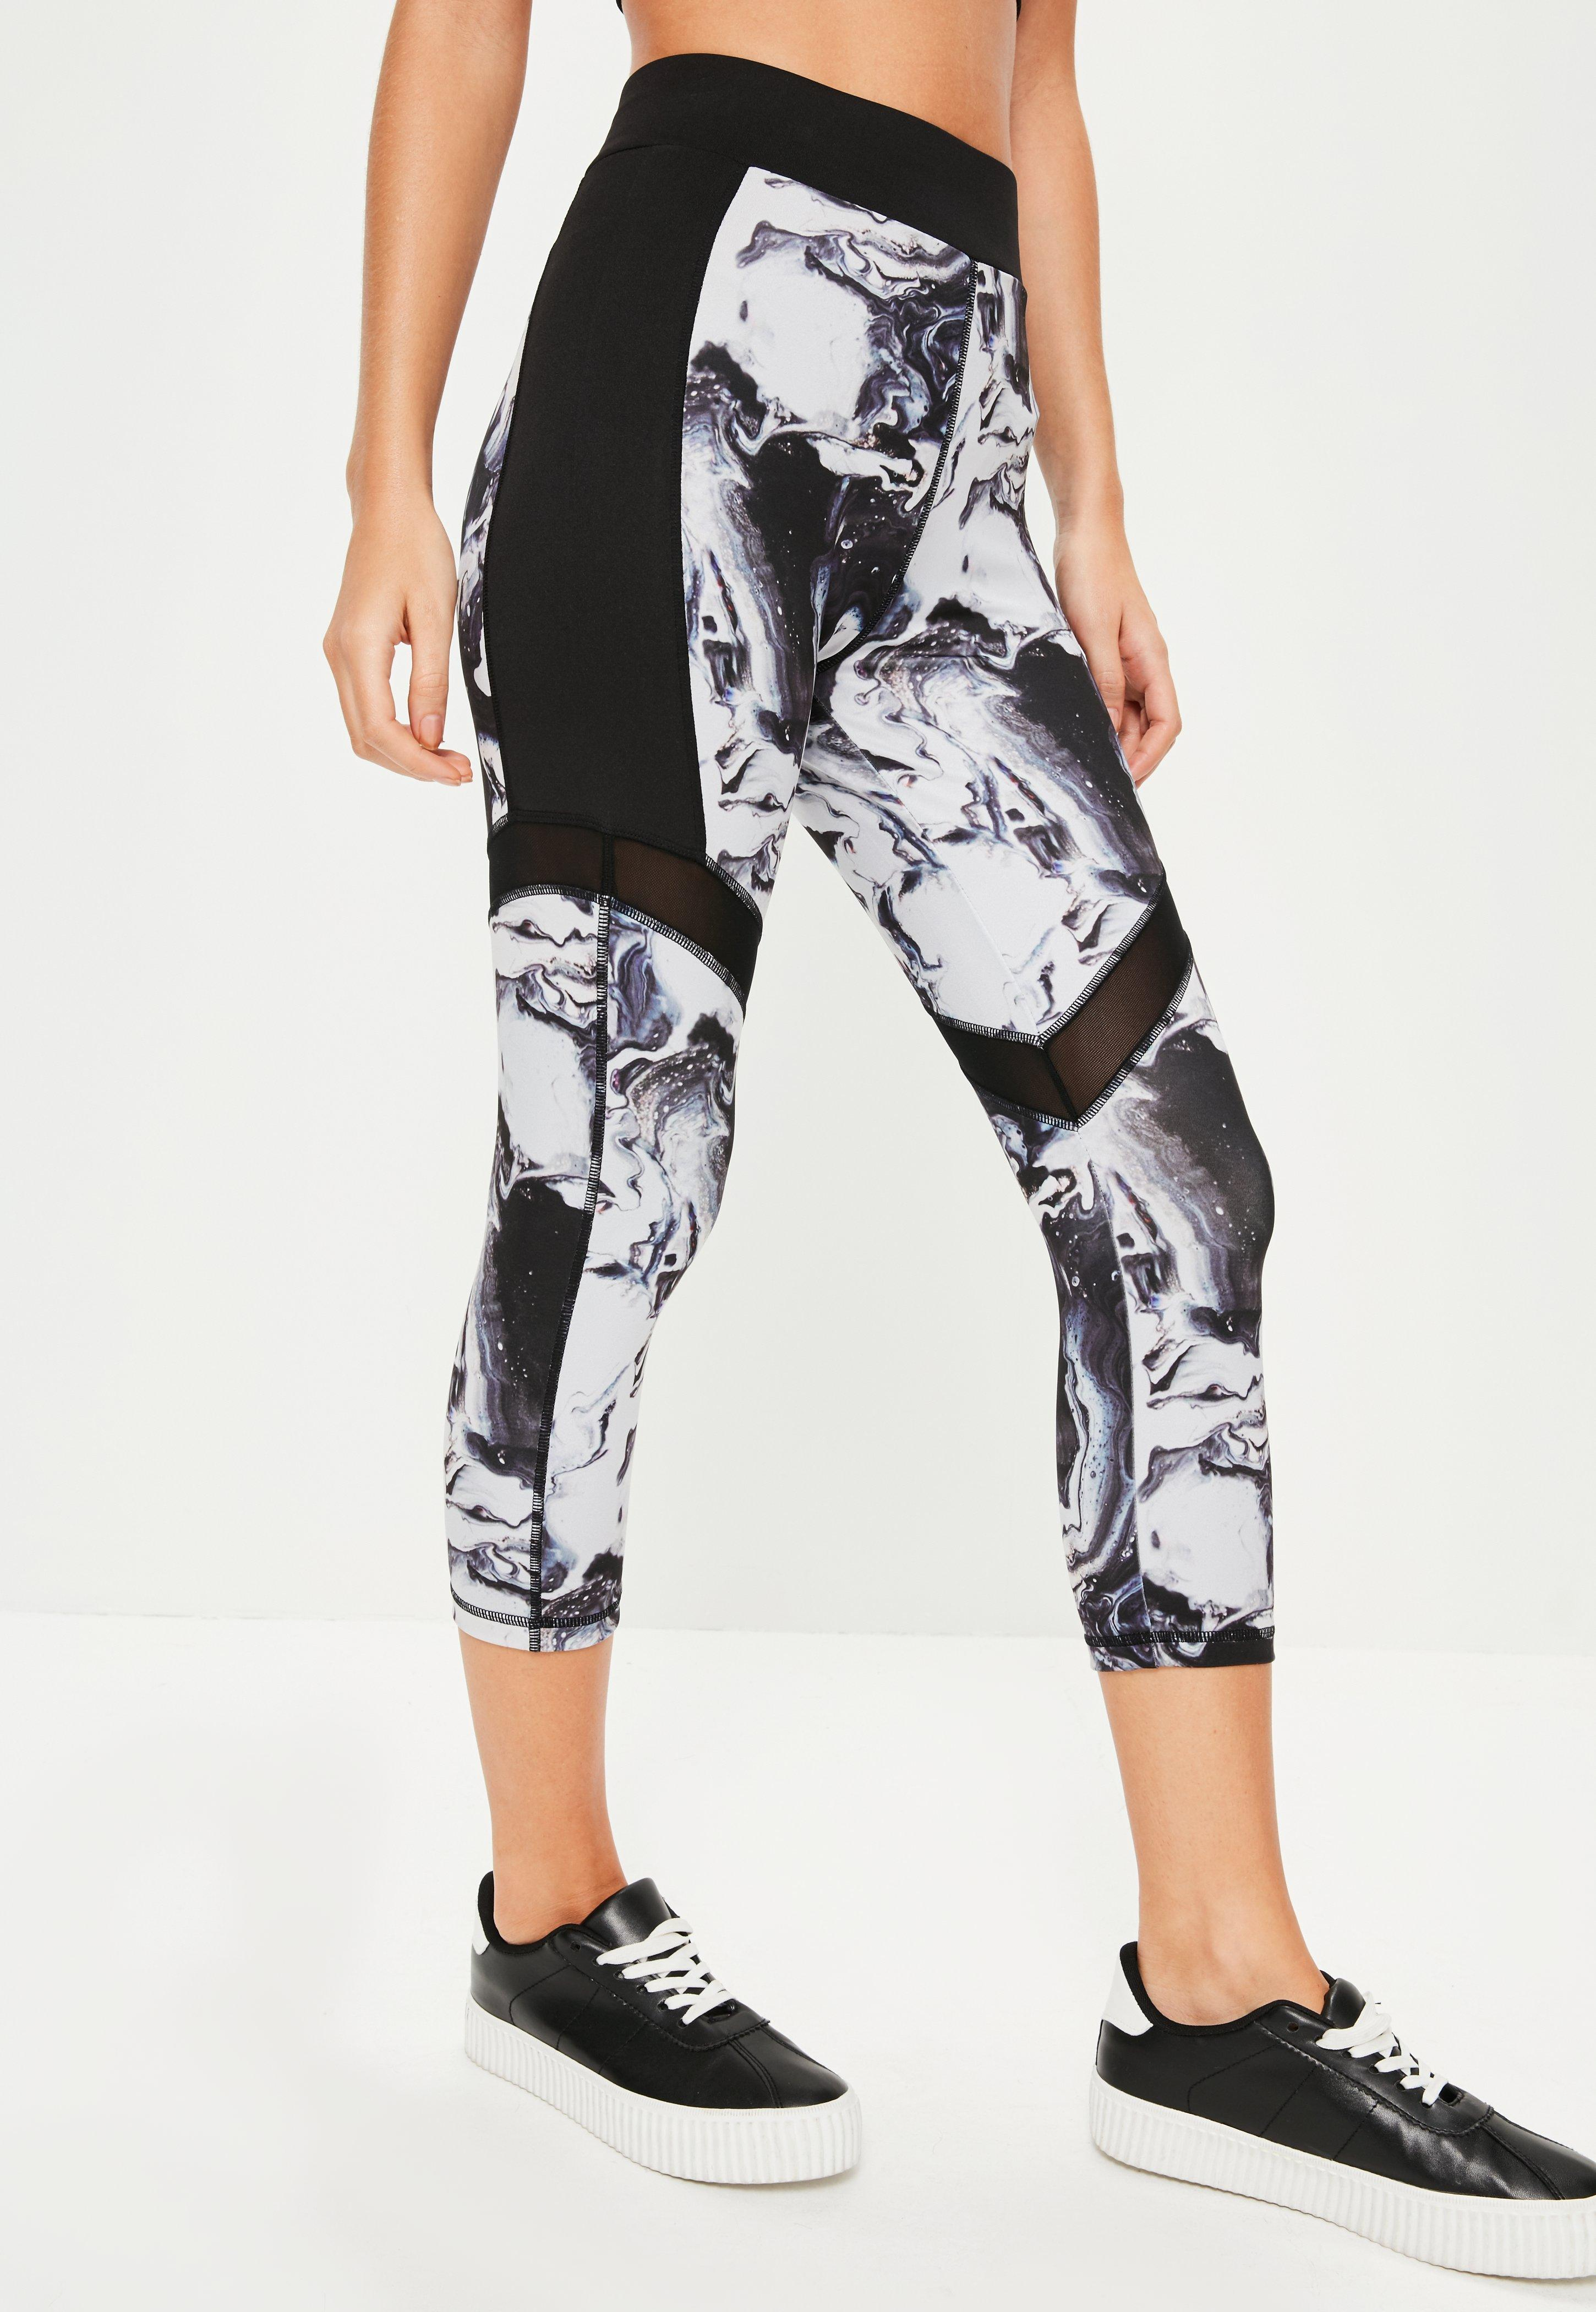 Active Black Marble Print Crop Leggings. Was $28.00. Now $19.00 (31% off).  Previous Next